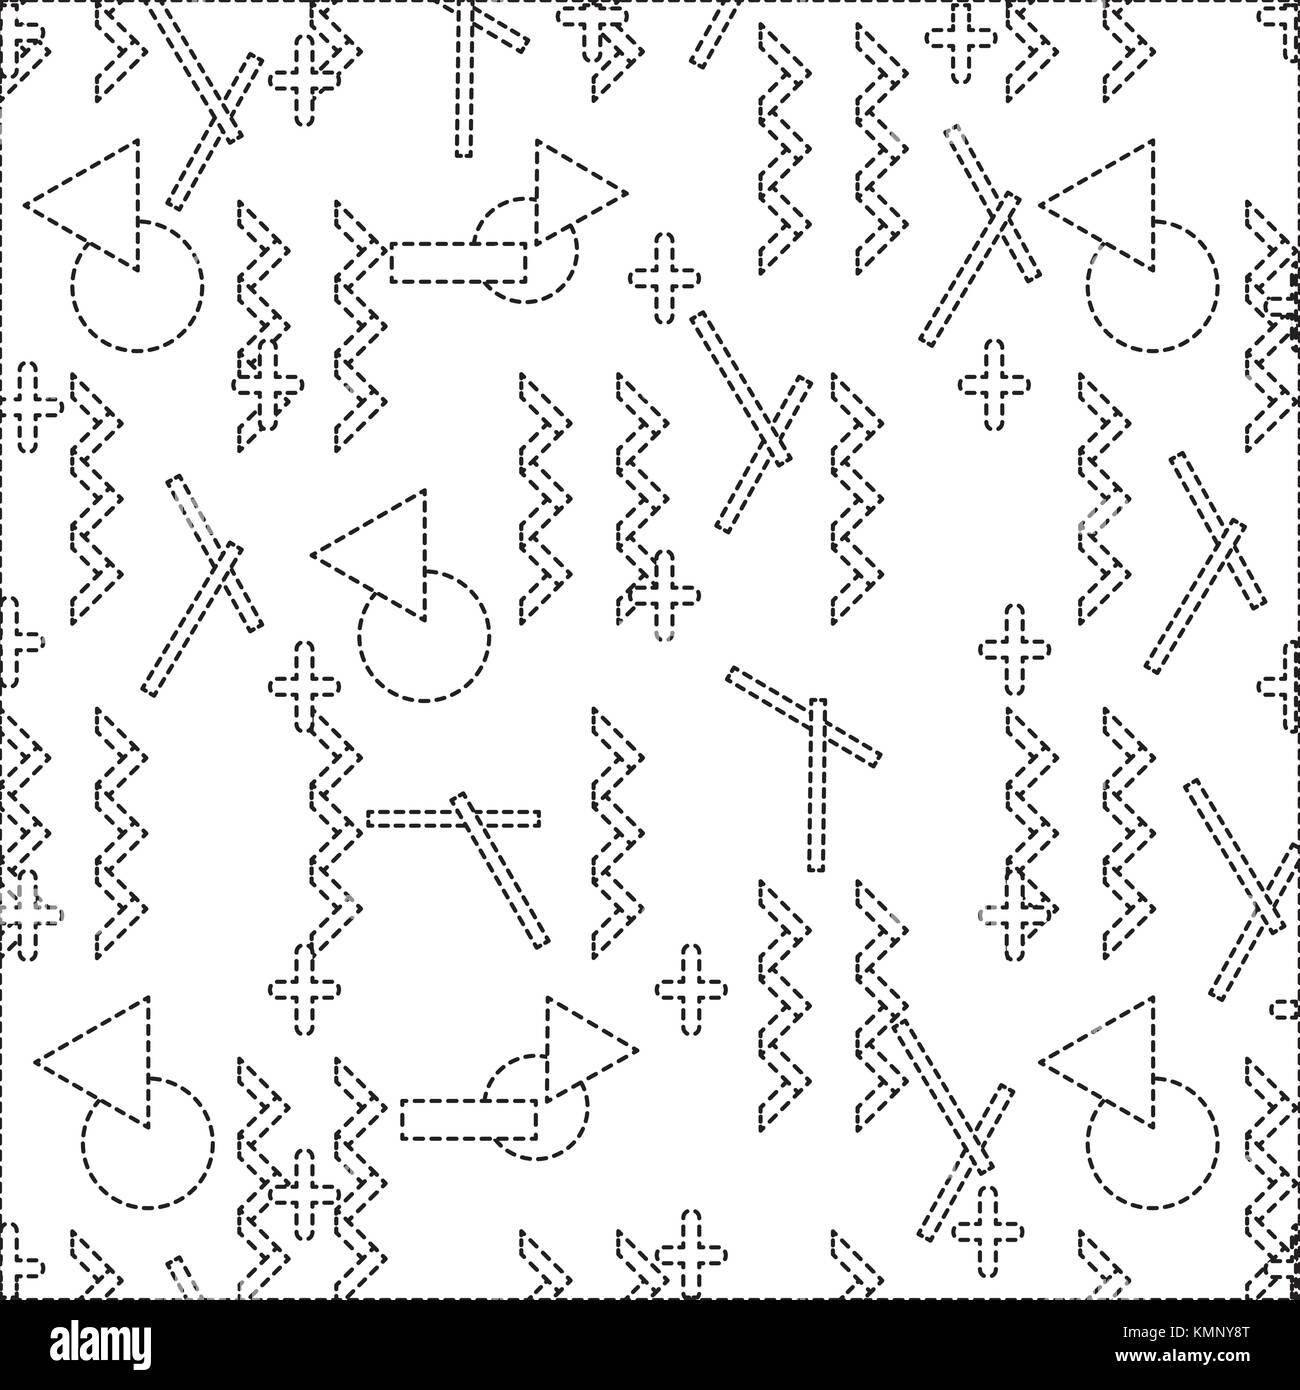 dotted shape geometric figures abstract memphis style background - Stock Image